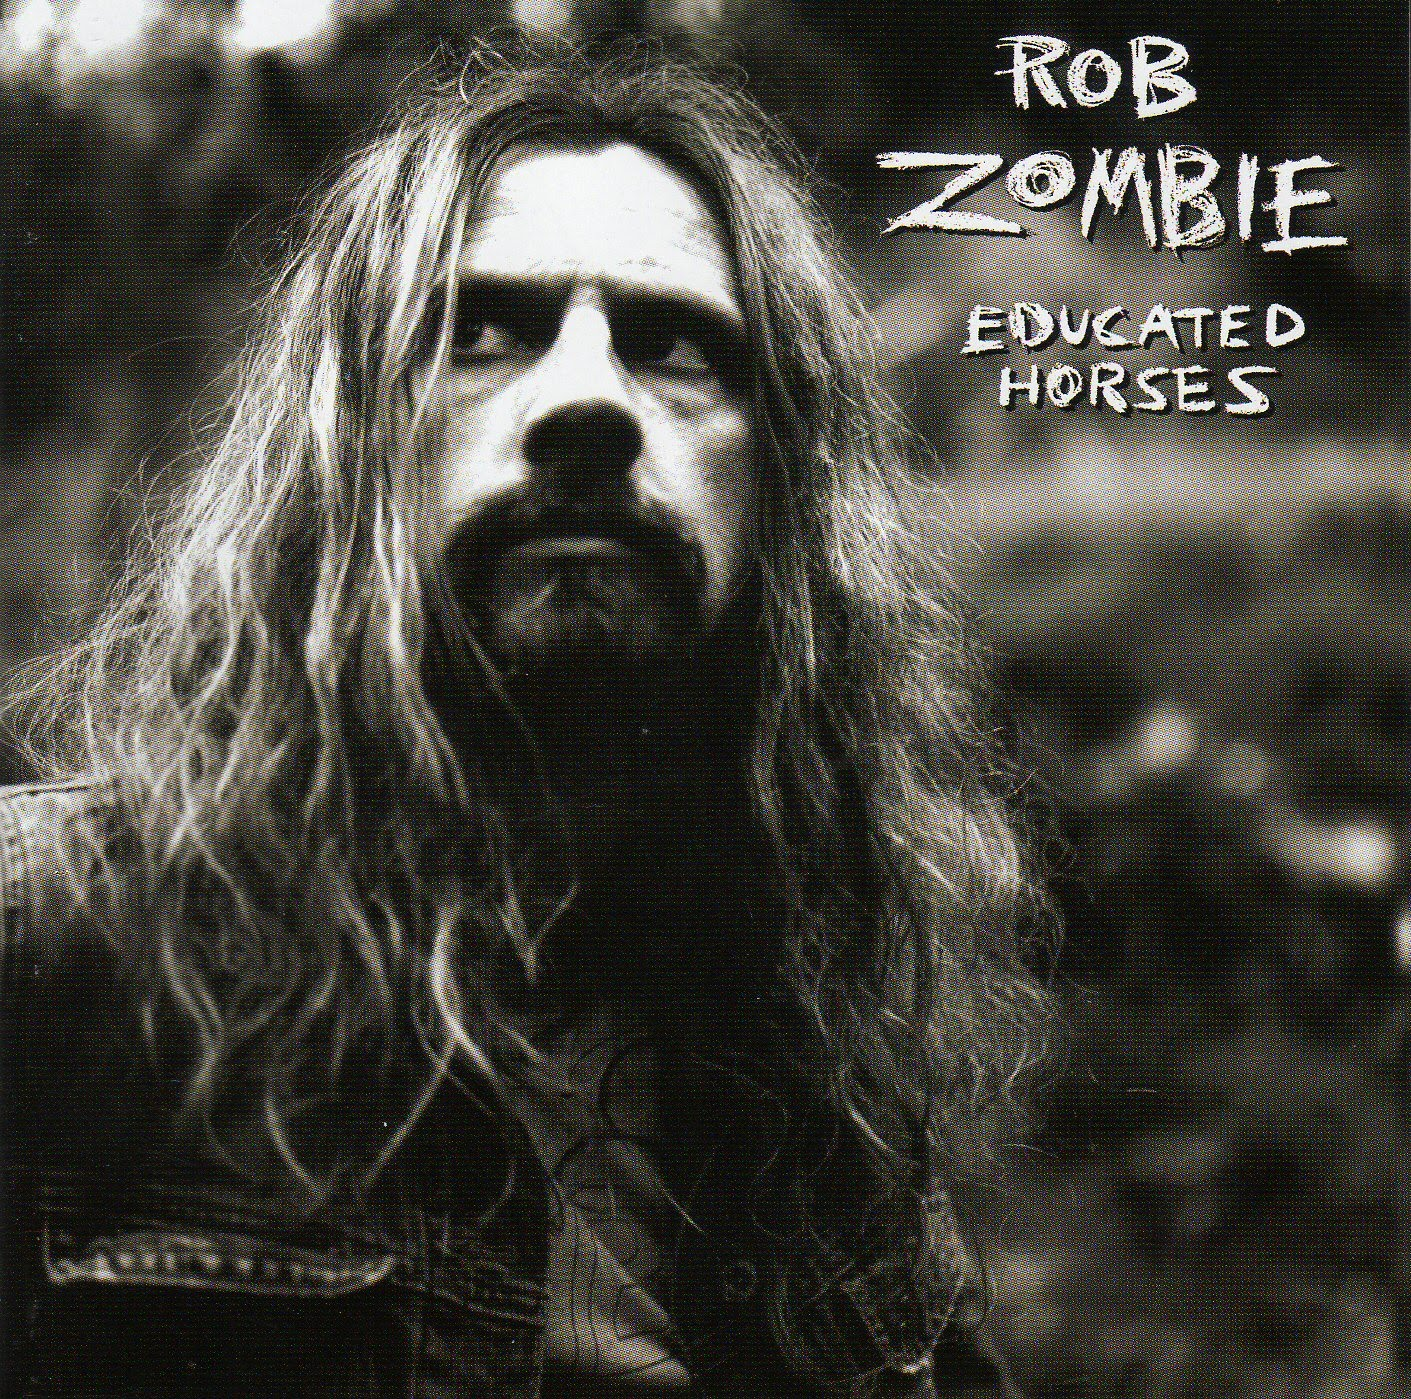 ... Zombie Hellbilly Deluxe 2 Special Edition Rock birthdays for march 28